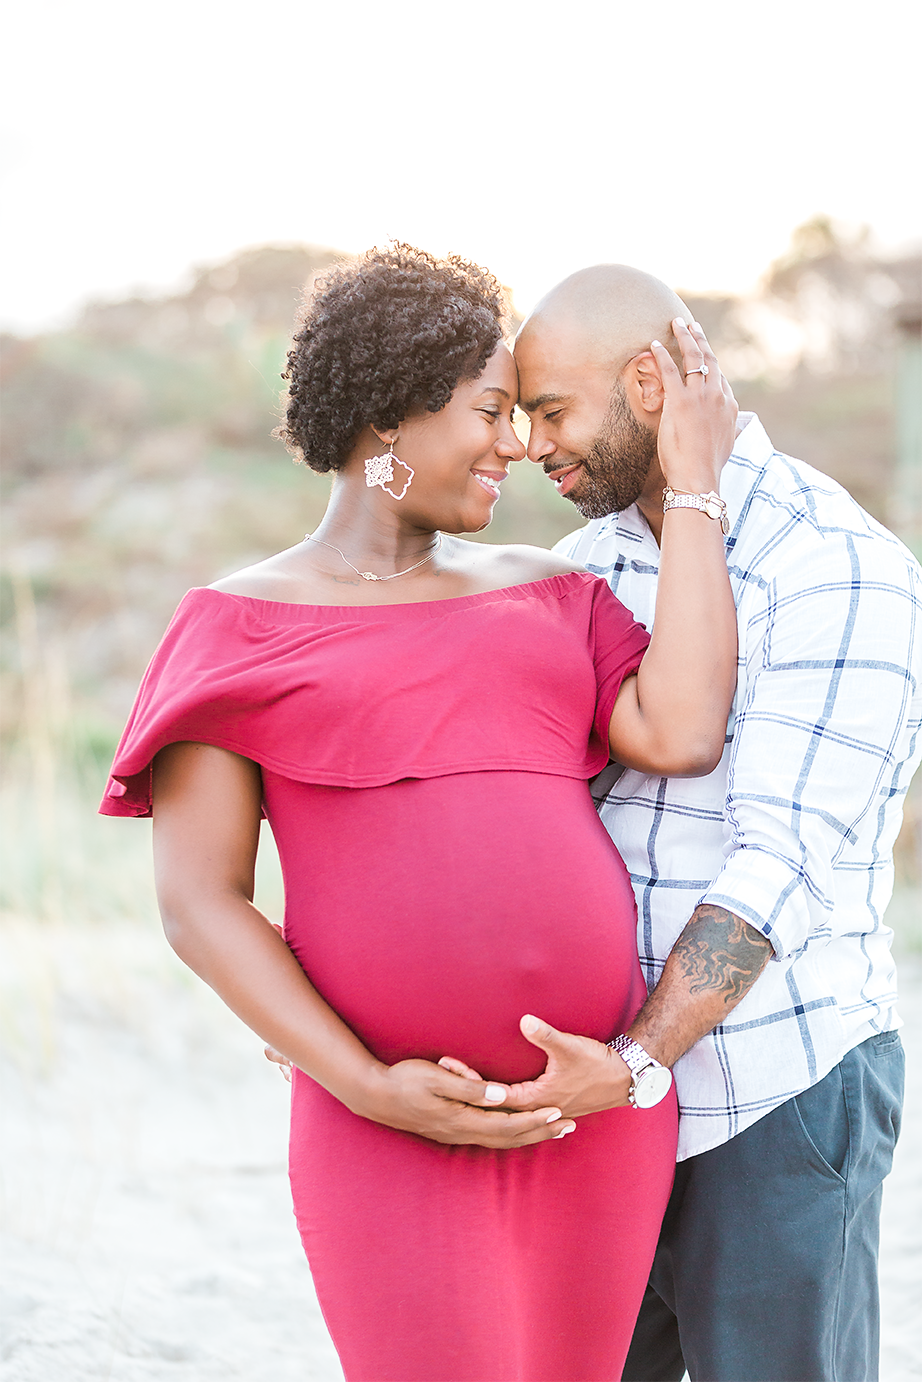 maternity+photography+jacksonville+fl+and+ponte+vedra+beach.png